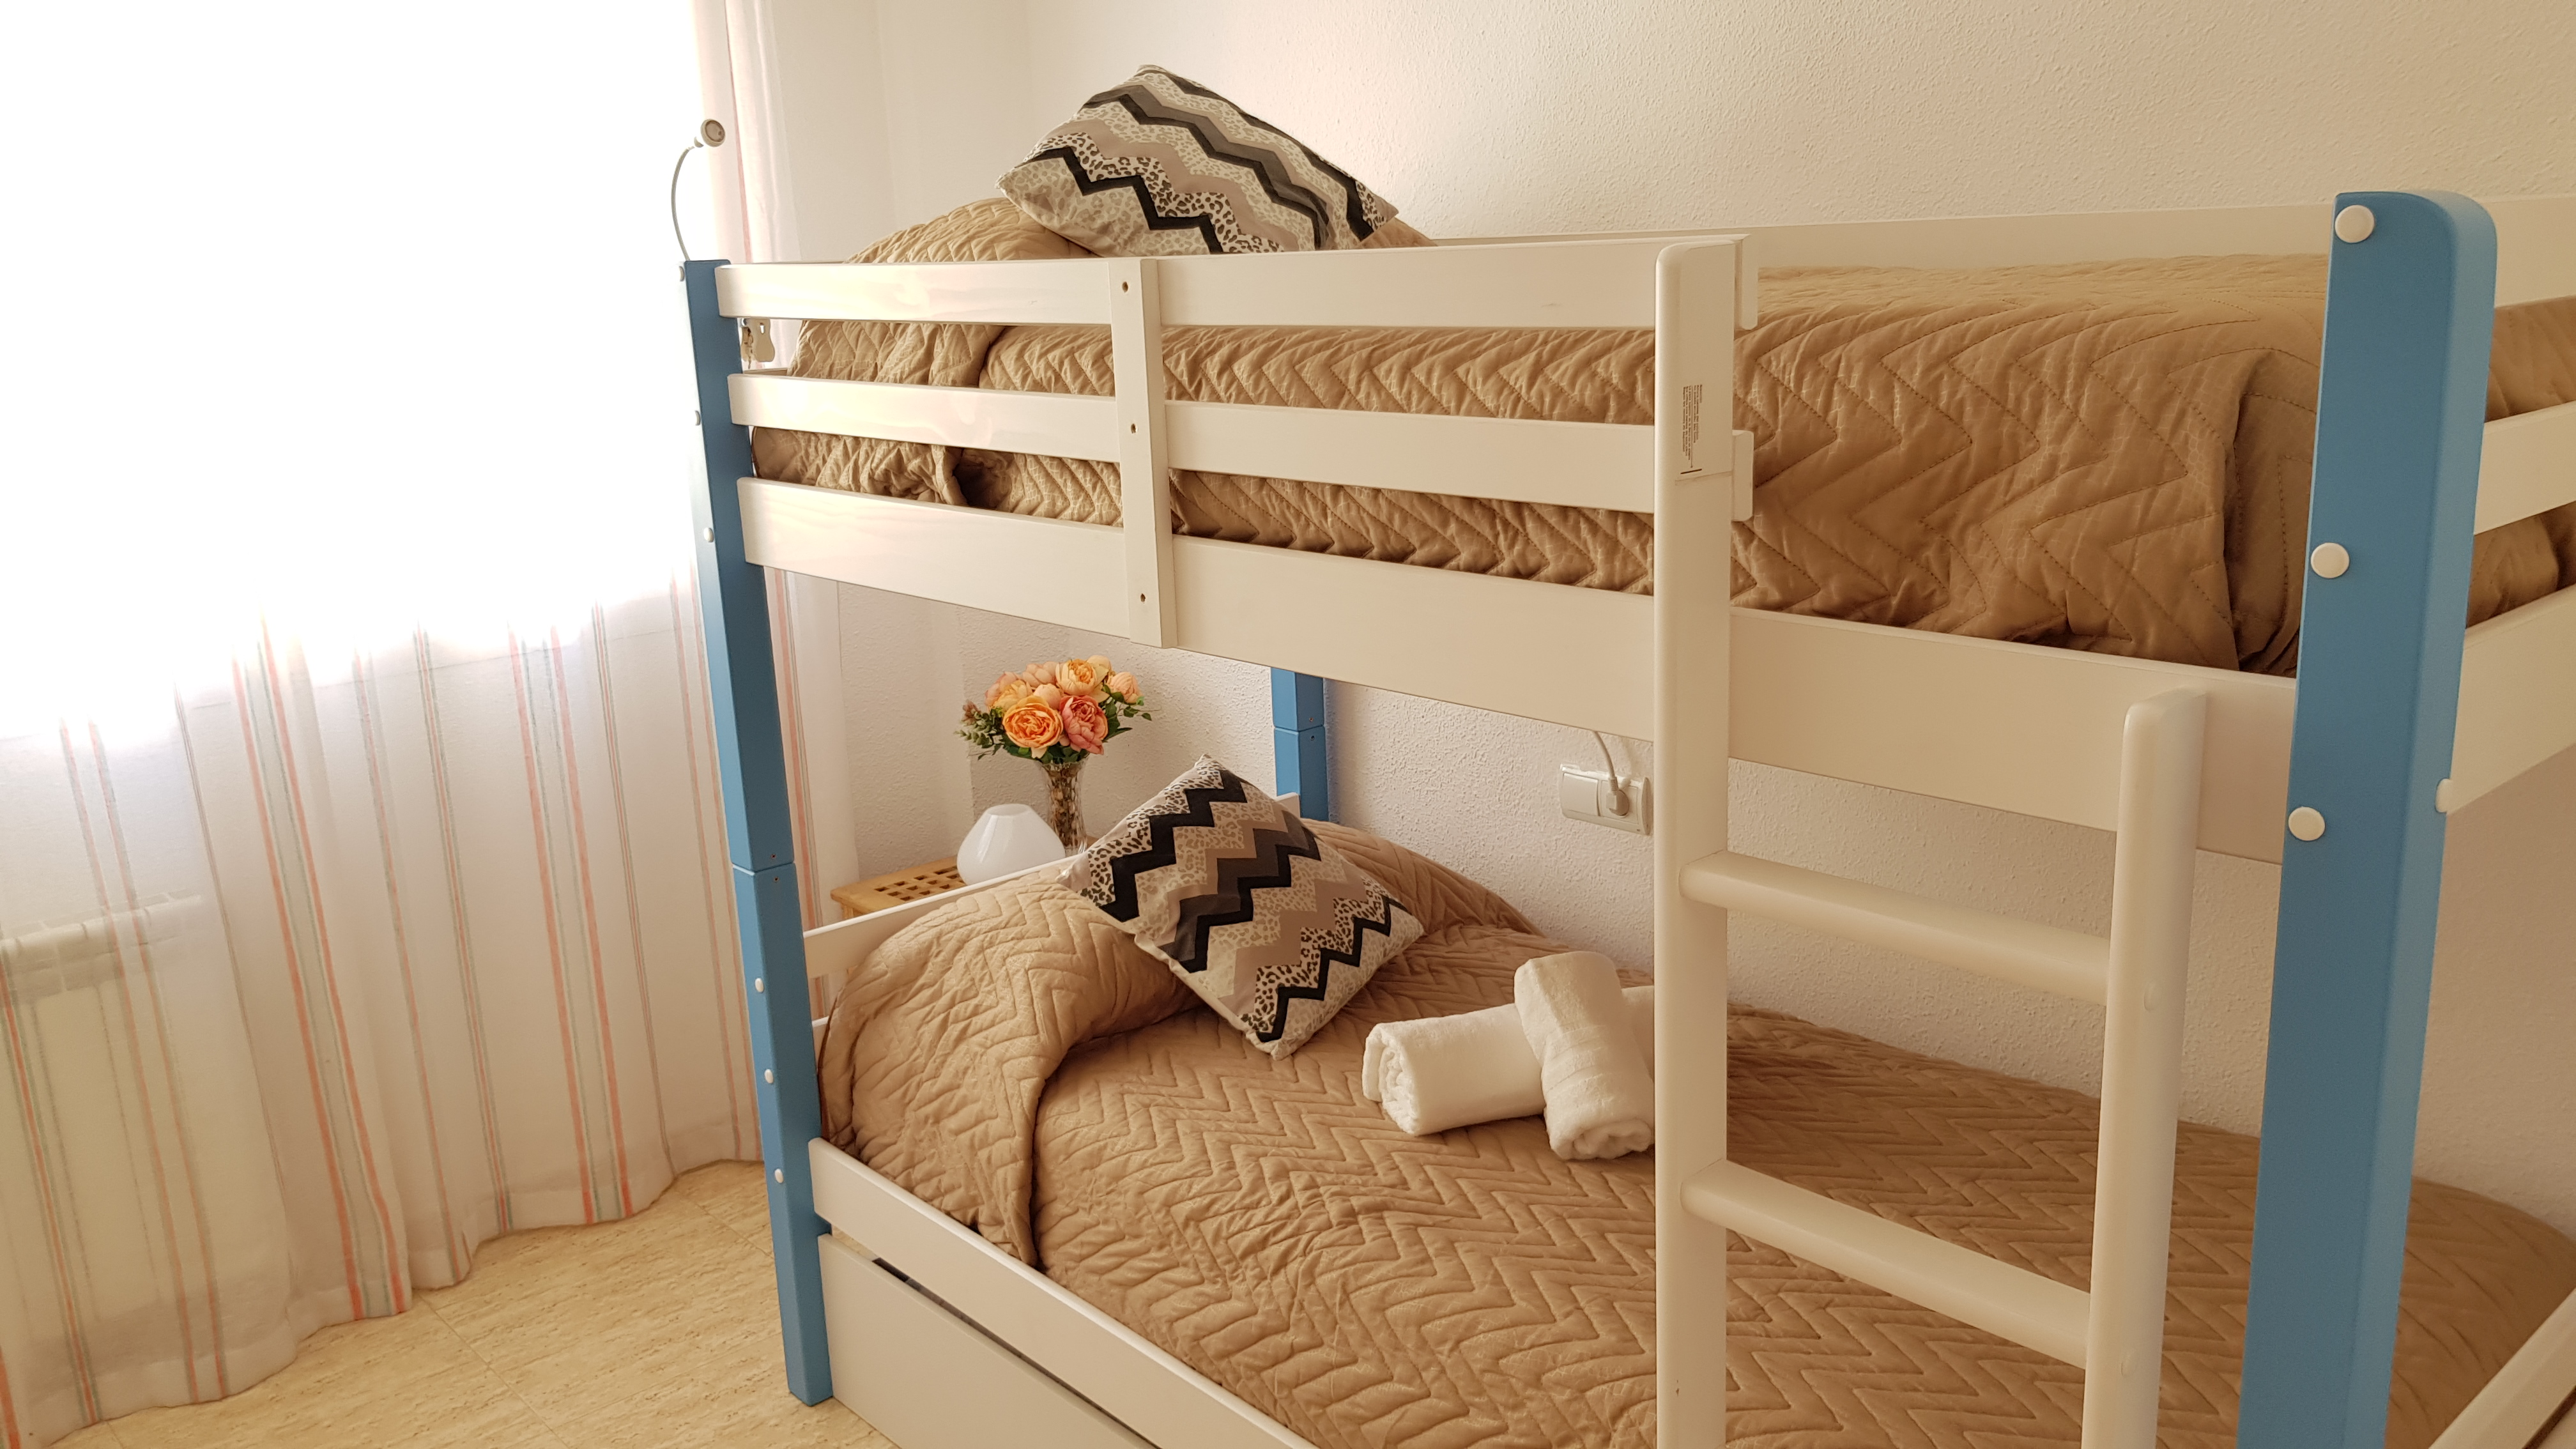 SE C - Double room with bunk bed